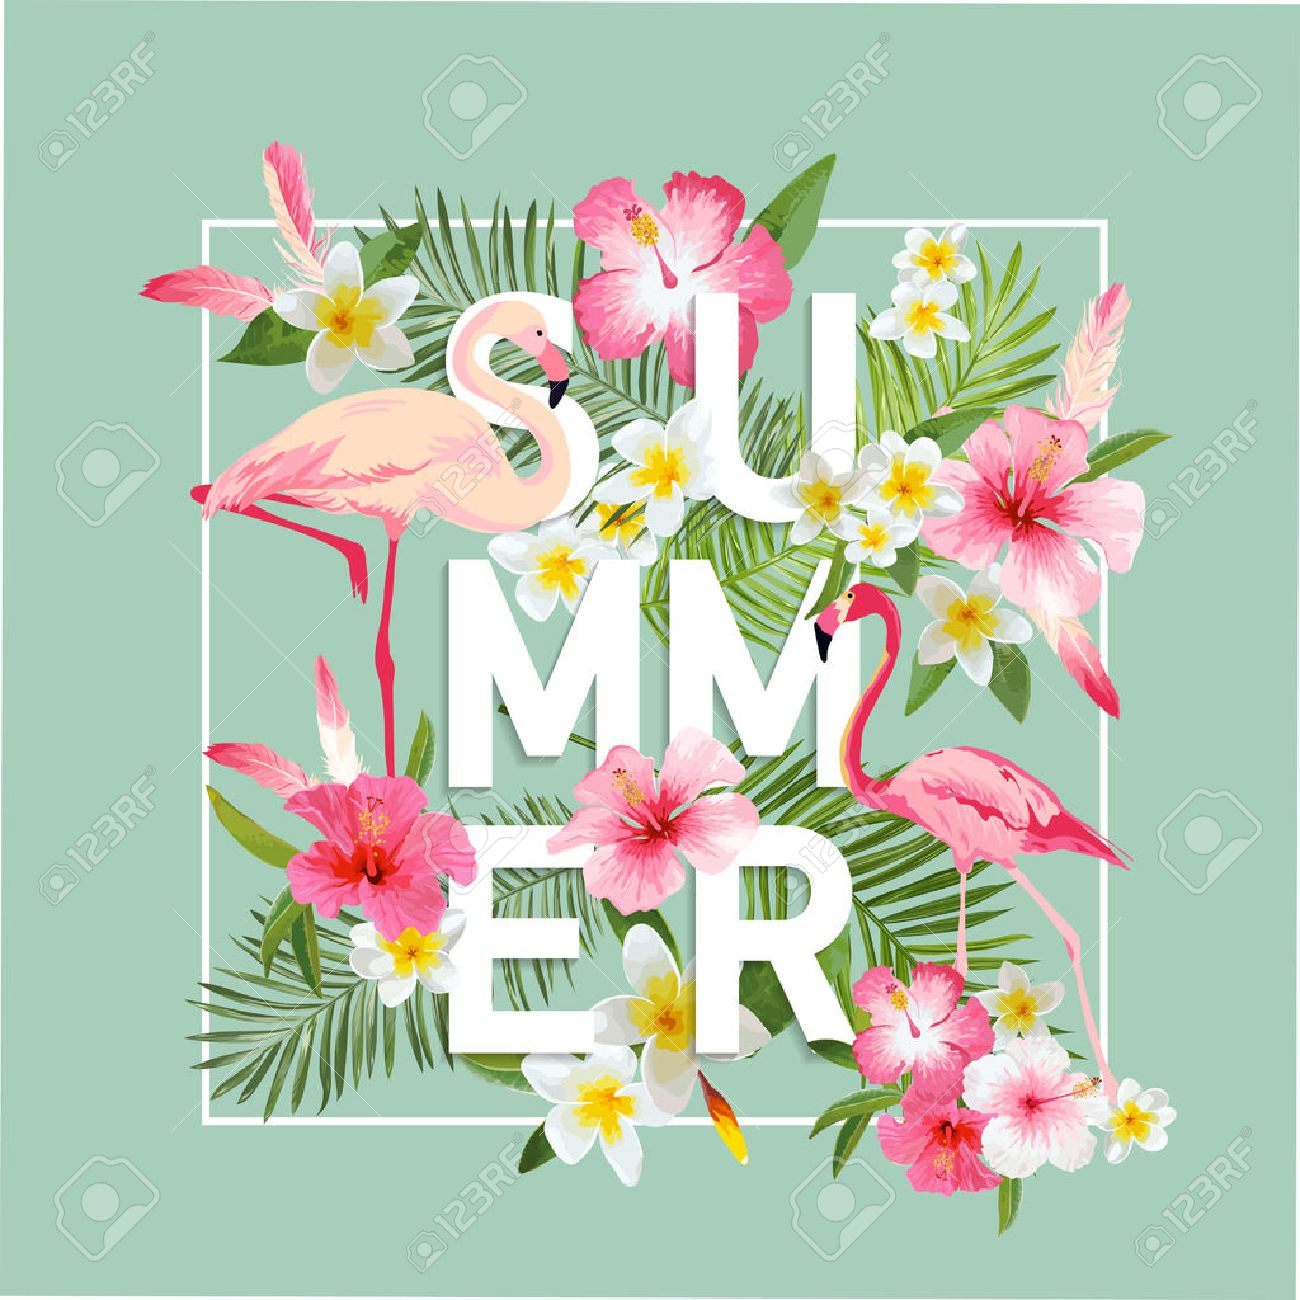 Tropical Flowers Background. Summer Design. Vector. Flamingo Background. T-shirt Fashion Graphic. Exotic Background. - 54146531